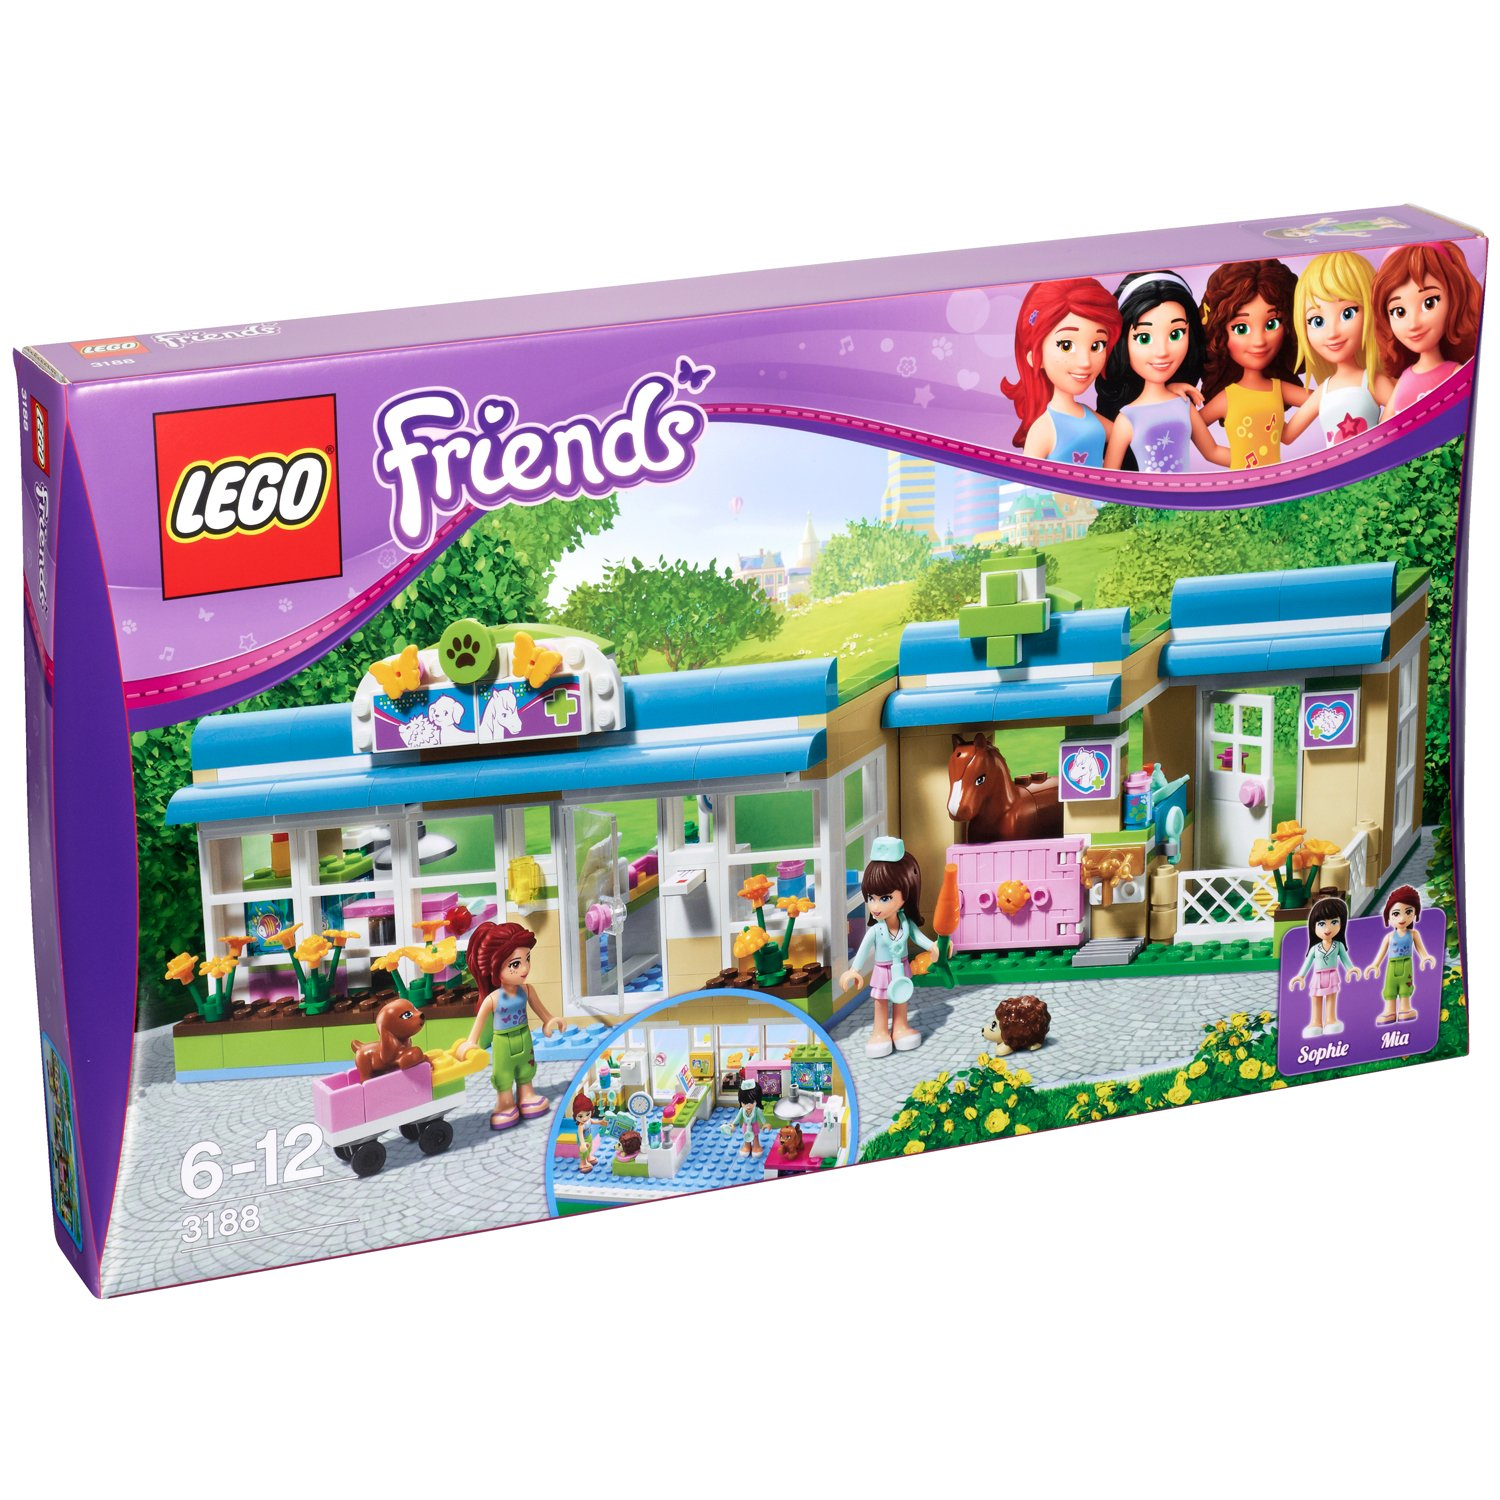 Souvent LEGO Friends - 3188 - Jeu de Construction - La Clinique  OR19